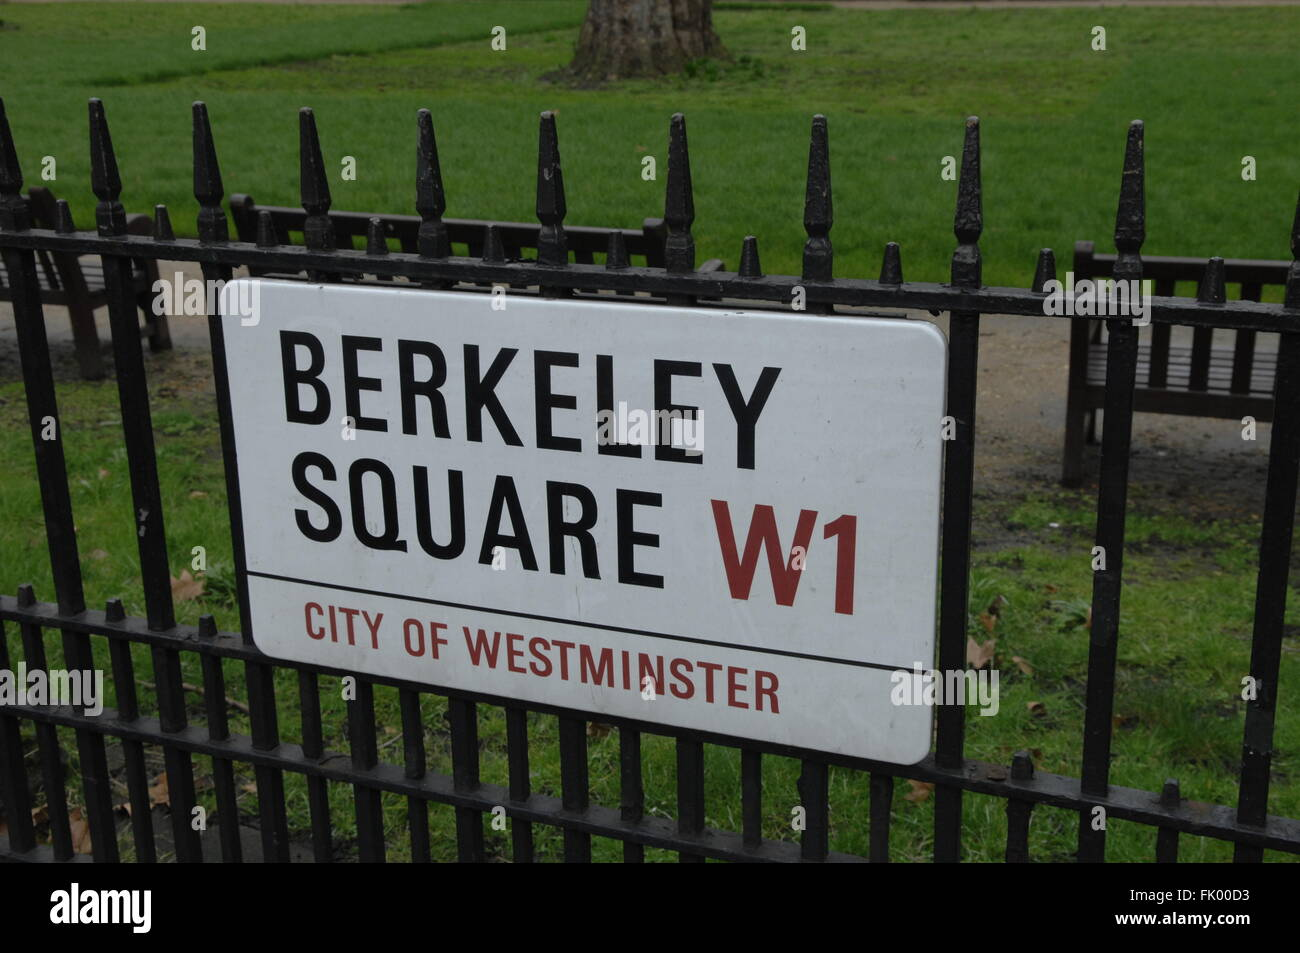 Berkeley Square Street Sign London W1 England - Stock Image